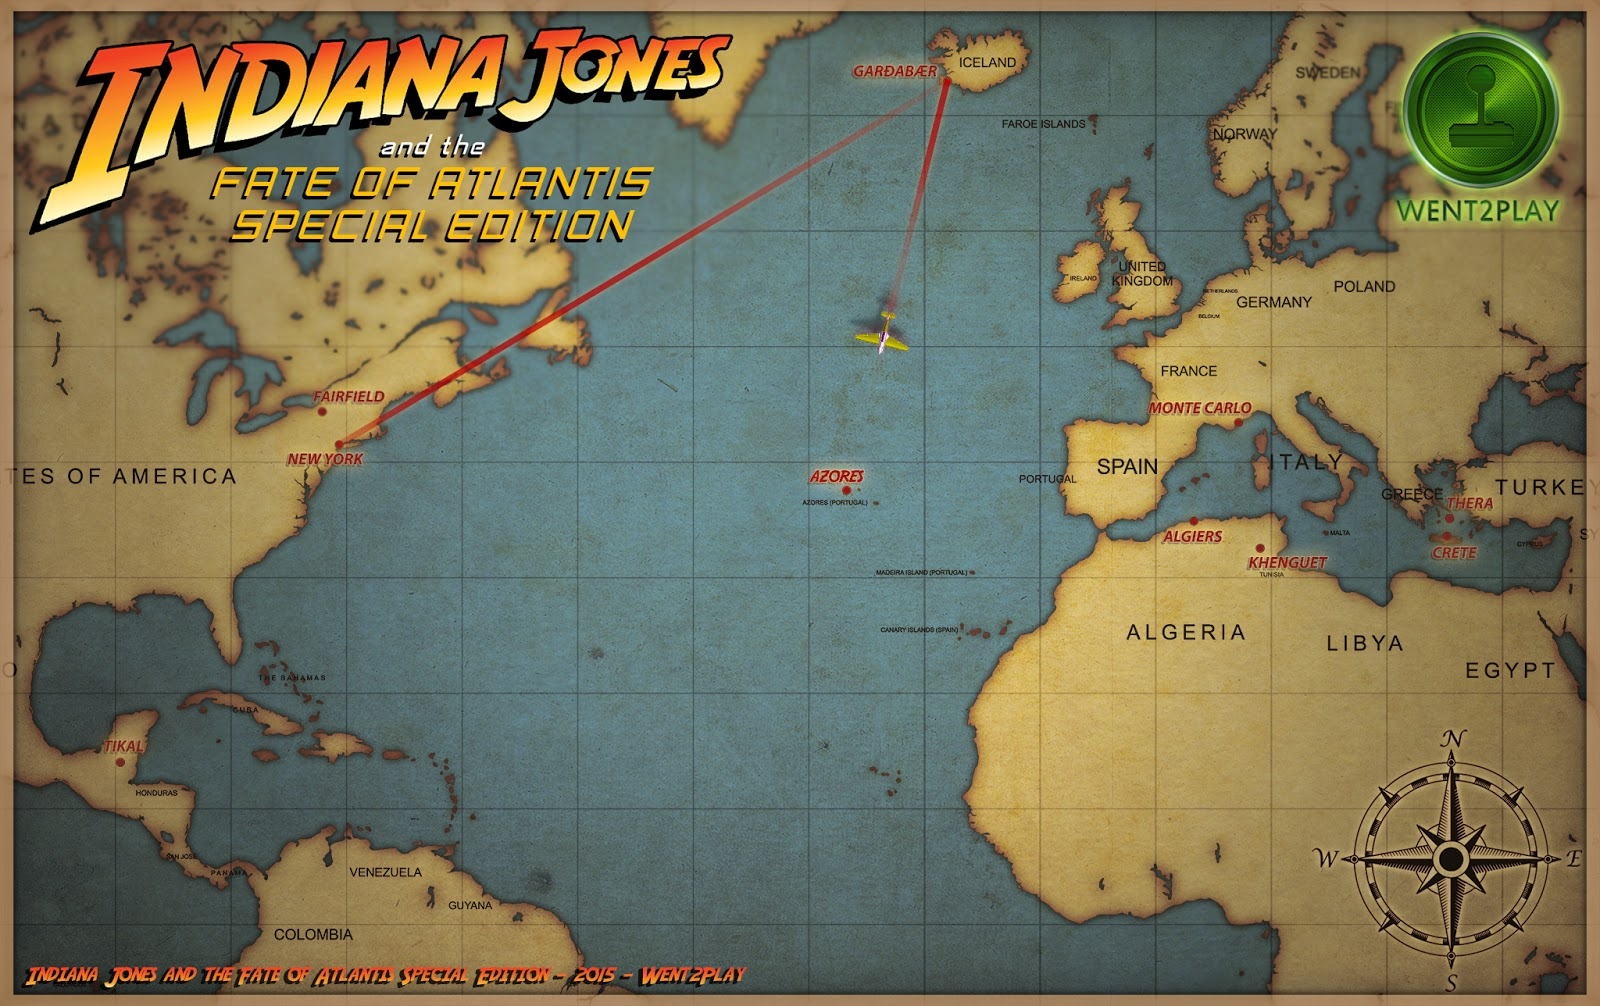 Indiana jones and the fate of atlantis special edition development screenshots on twitter httpstwitterfoase gumiabroncs Choice Image